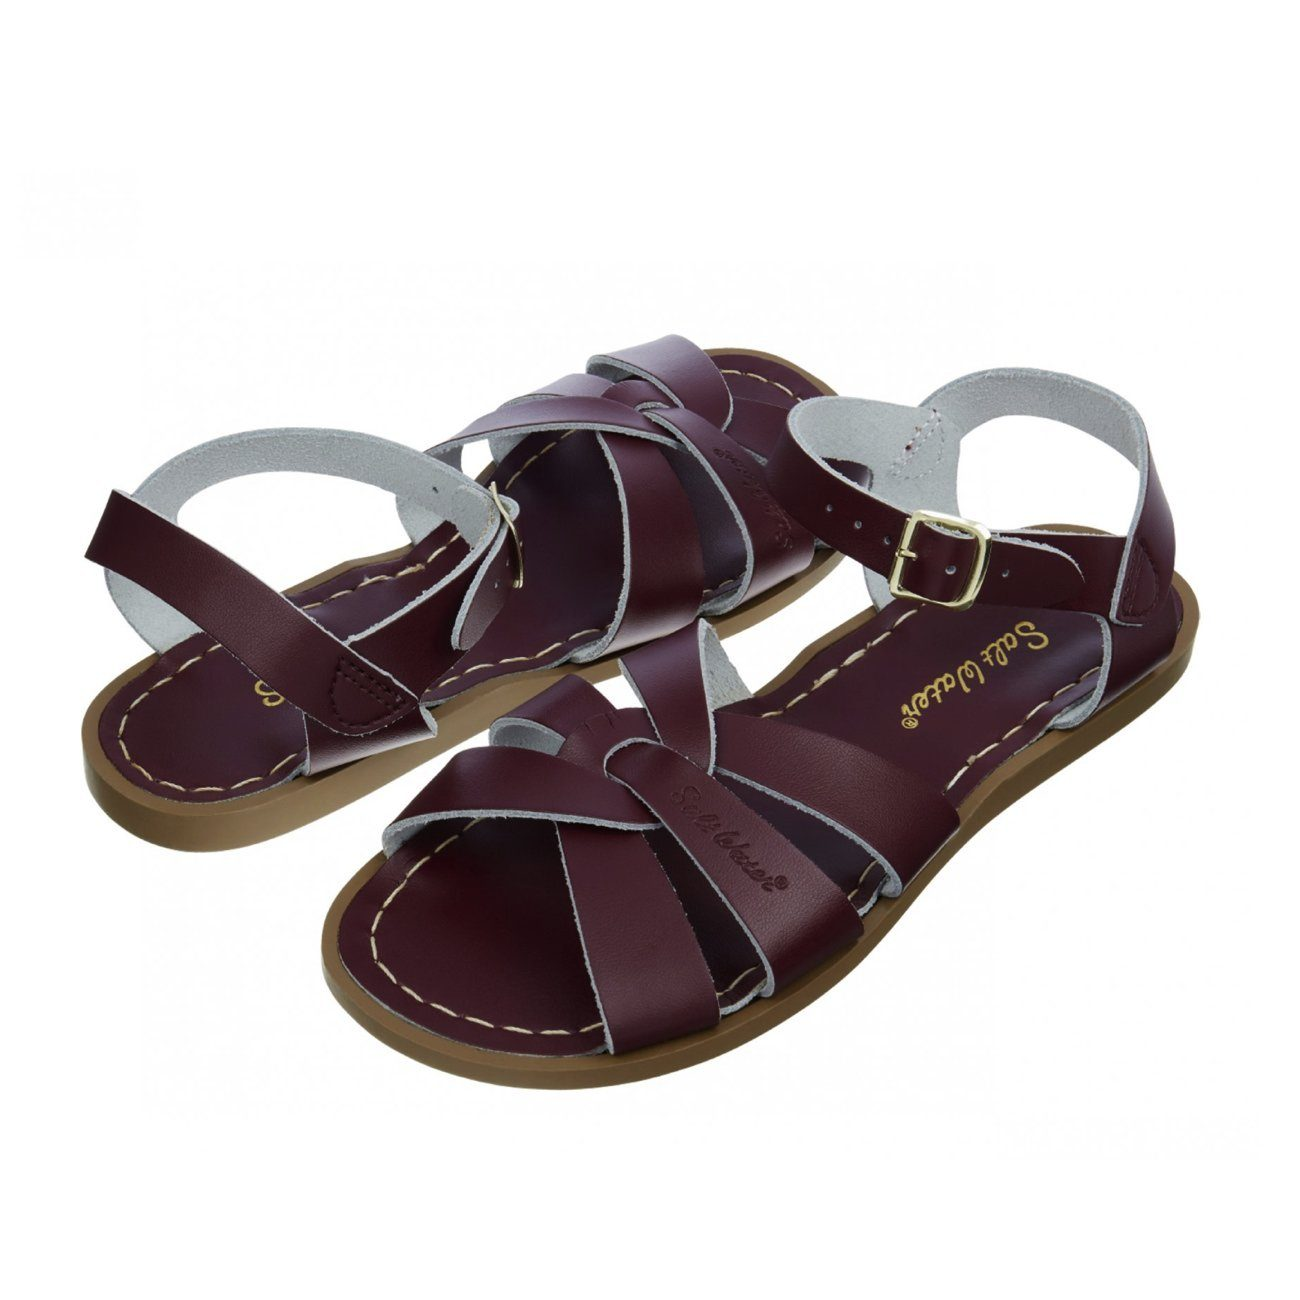 Salt Water Sandals, Original, Child, Claret Sandals Salt Water Sandals Claret C11